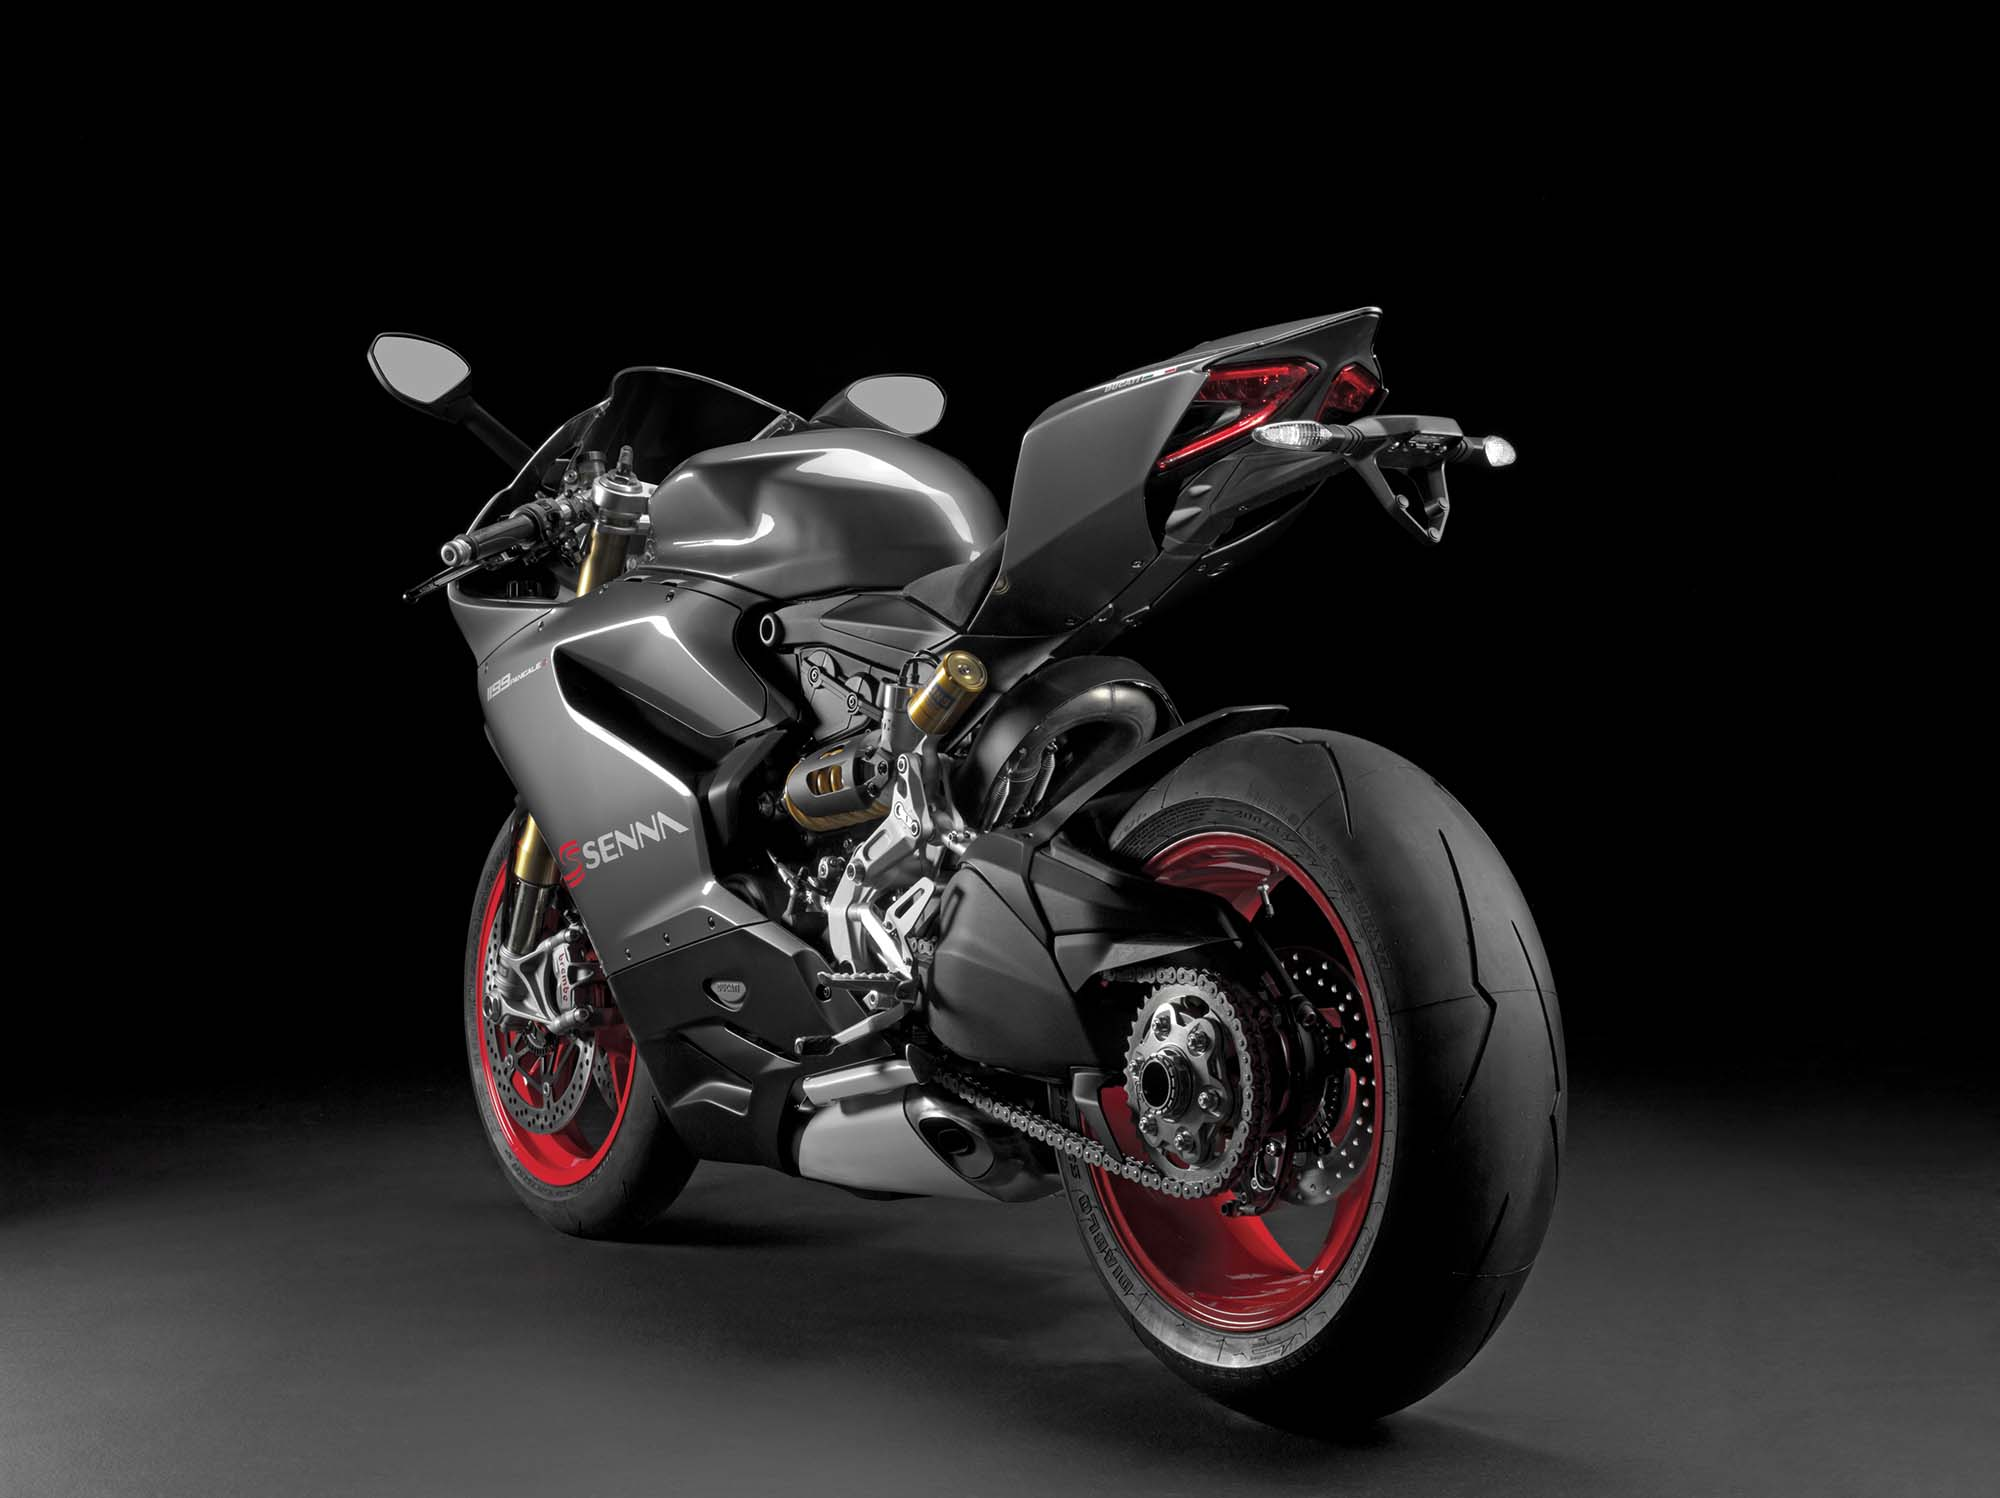 ducati superbike 1199 panigale s: pics, specs and list of seriess